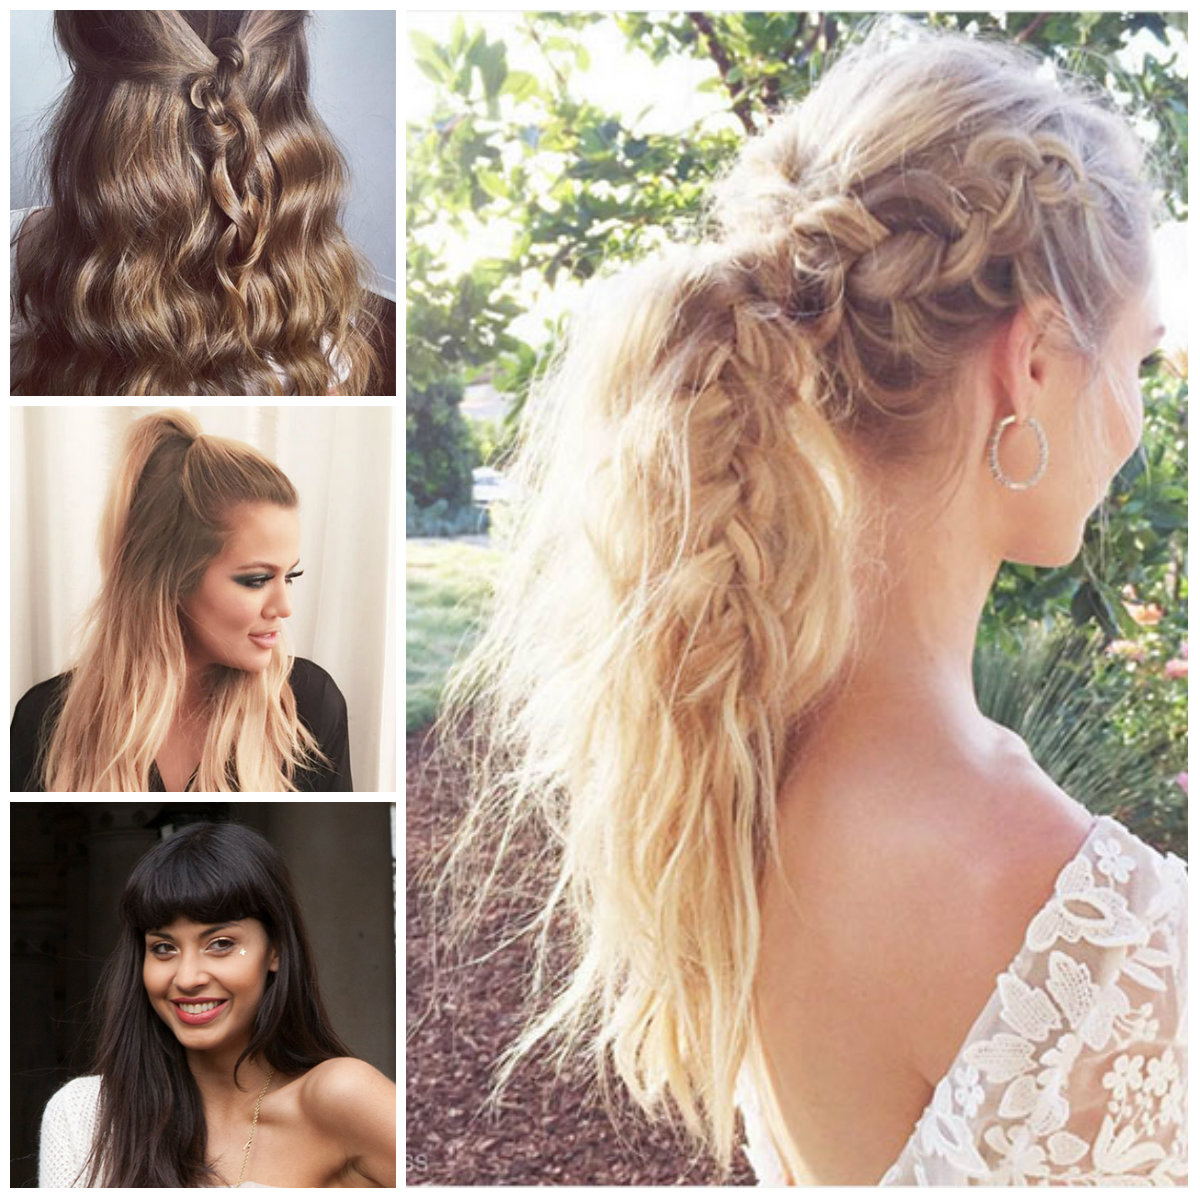 """Sweet ideas for long hair """"width ="""" 500 """"height ="""" 500 """"data-jpibfi-post-excerpt ="""" """"data-jpibfi-post-url ="""" http://www.frisuren-2018.com/suesse-ideas -for-long-hair / """"data-jpibfi-post-title ="""" Sweet ideas for long hair """"data-jpibfi-src ="""" http://www.frisuren-2018.com/wp-content/uploads/2019/ 05 / Sweet ideas-for-long-hair.jpg """"/> If you have long hair, then we have here <strong>long-haired ideas </strong>You should definitely try this year. Look down to find your favorite horse tails, beach waves, half-high half-down hairstyles or braids.<span id="""